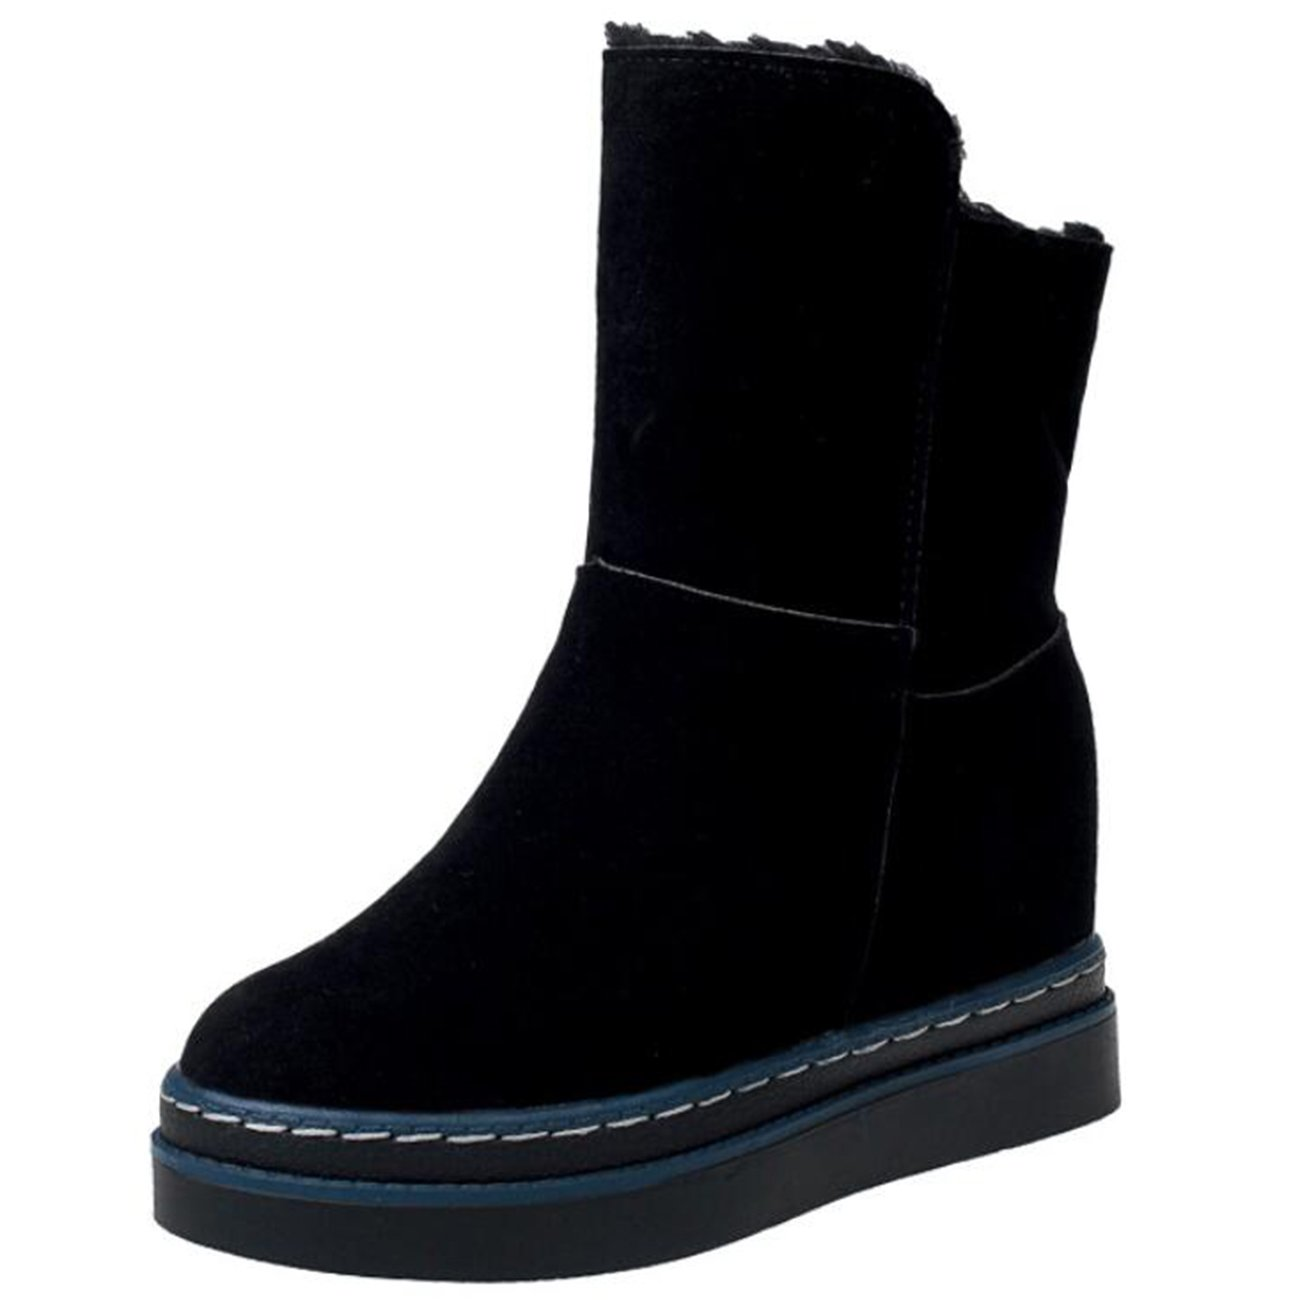 Mashiaoyi Womens Inner-Increaser Thick-Heel Slip-On Suede Snow Boots